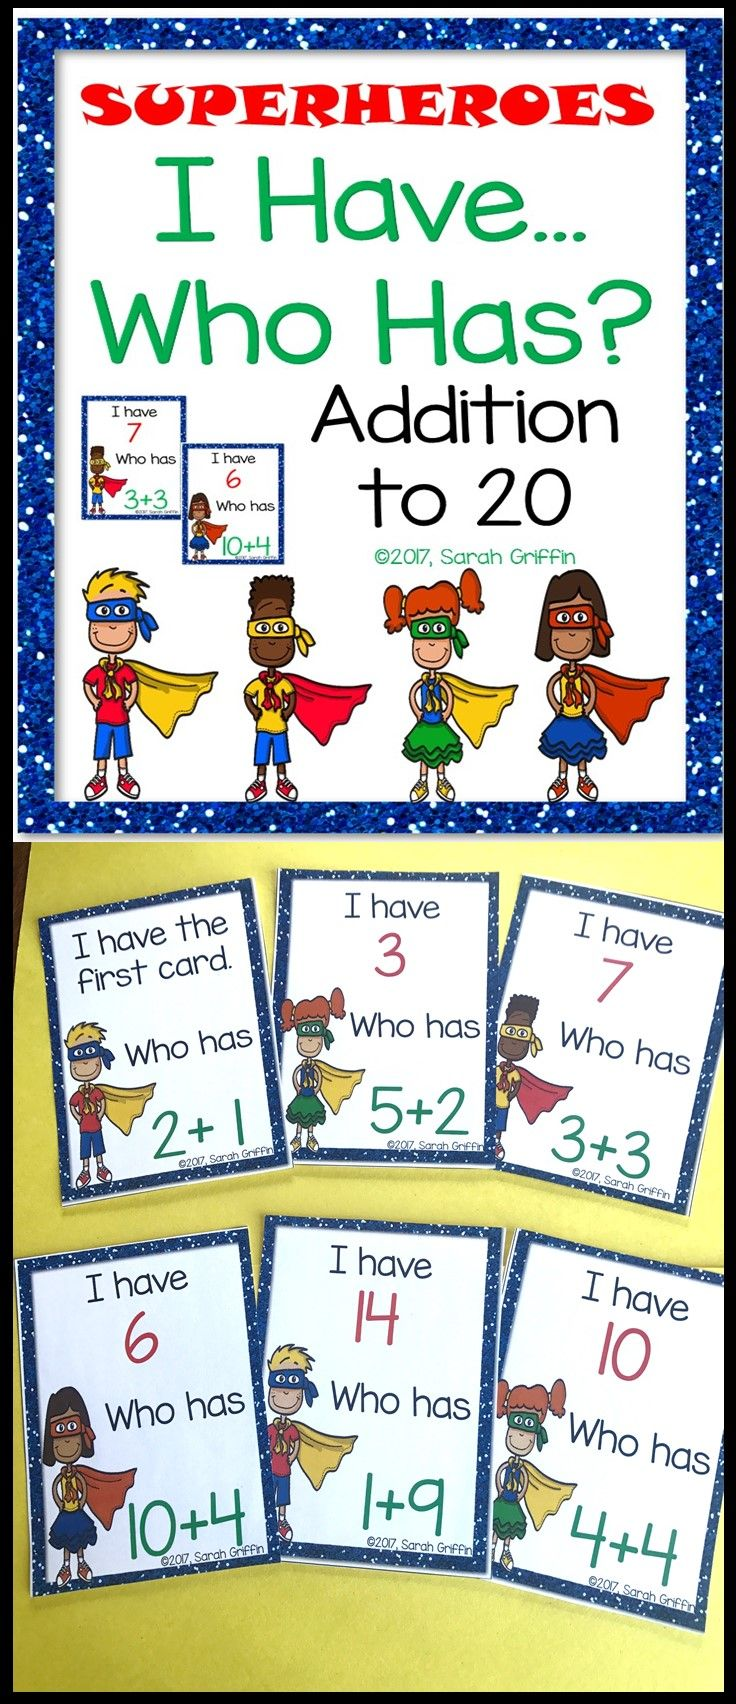 I Have, Who Has? Addition 020 Superheroes K2 Math